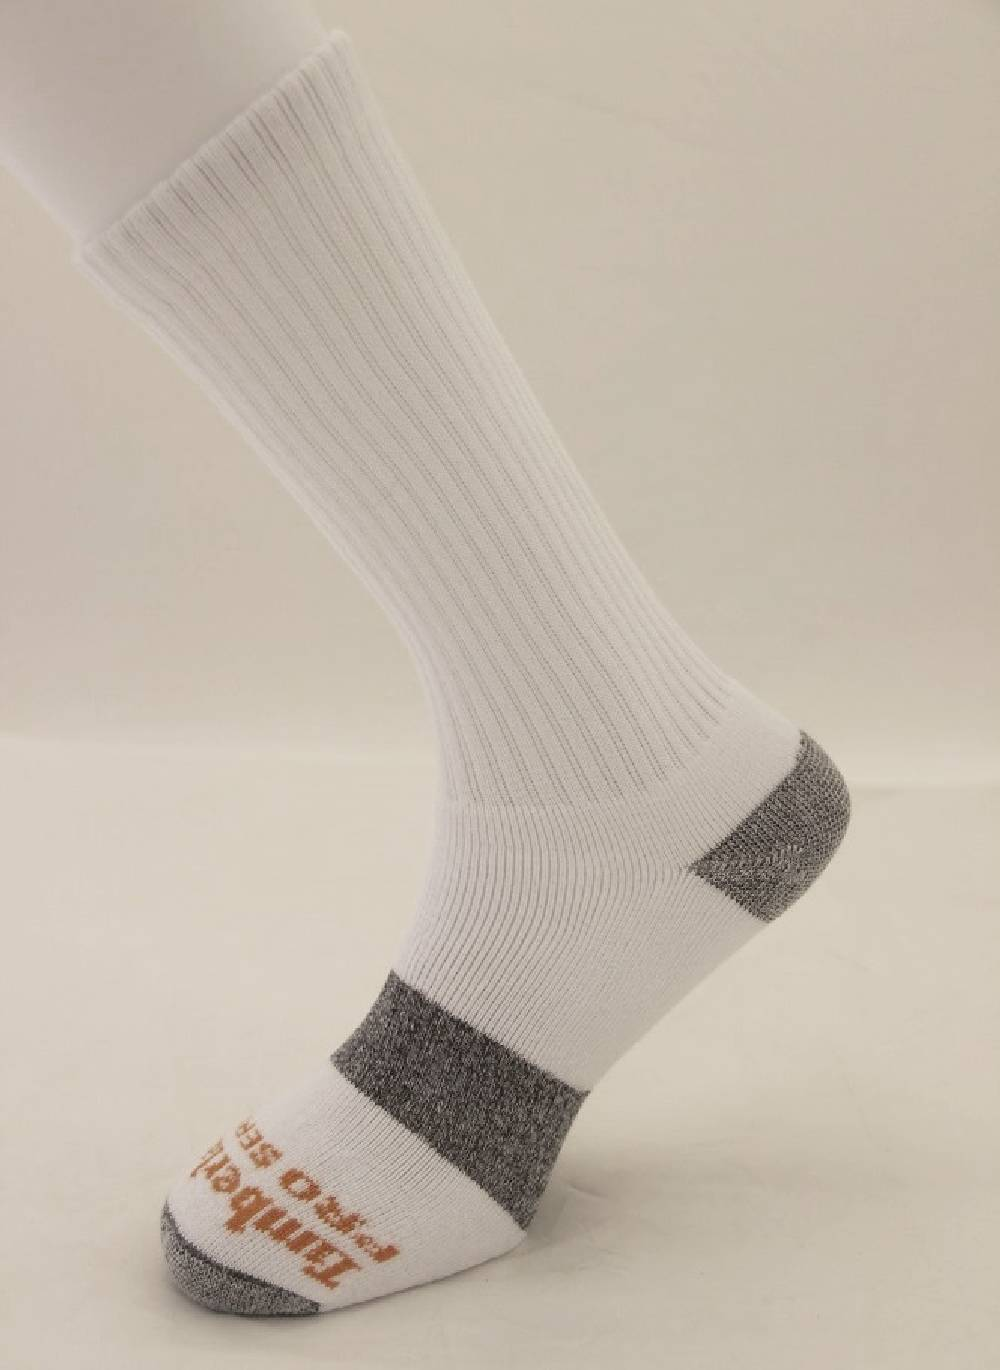 09a94af11 Timberland Pro Padded Footbed Crew Sock 3 Pack White